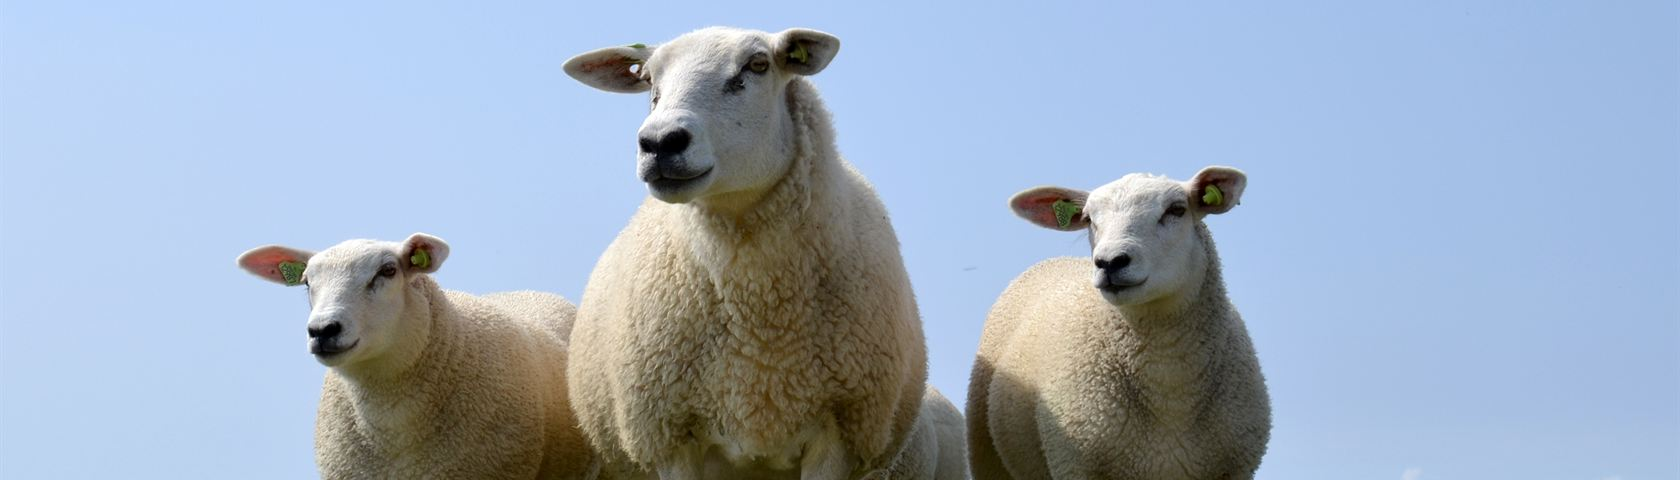 Sheep of Terschelling